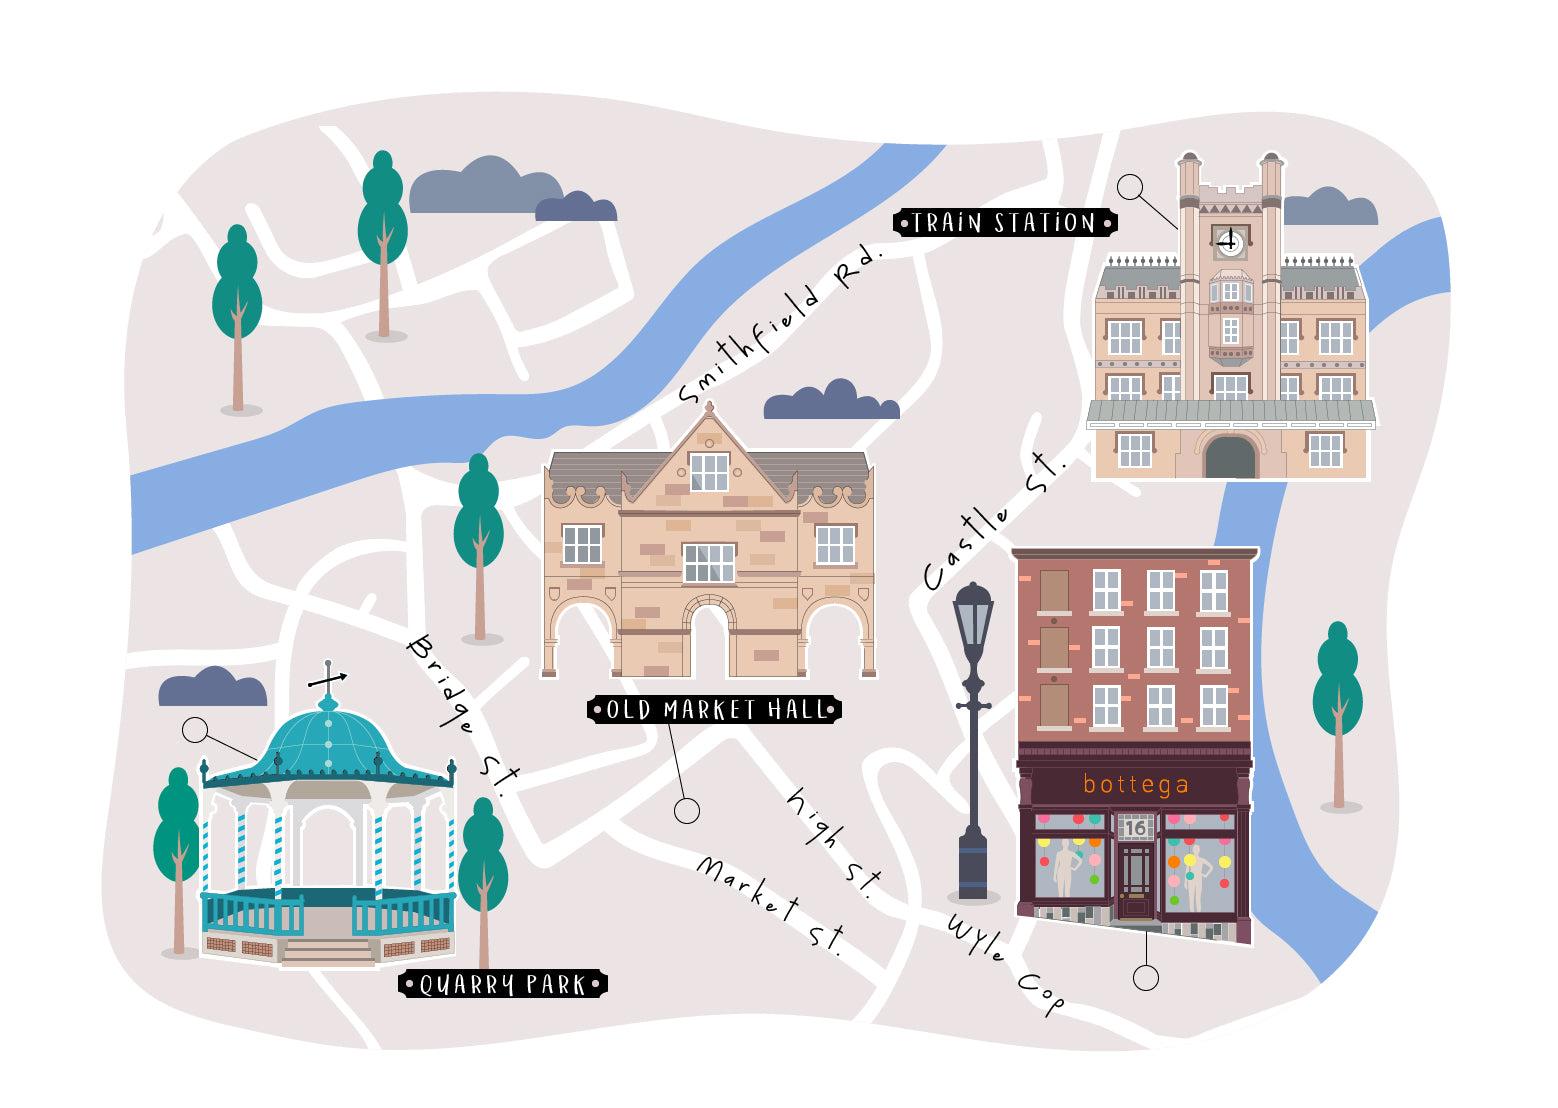 Bottega Shrewsbury Street Map Illustration